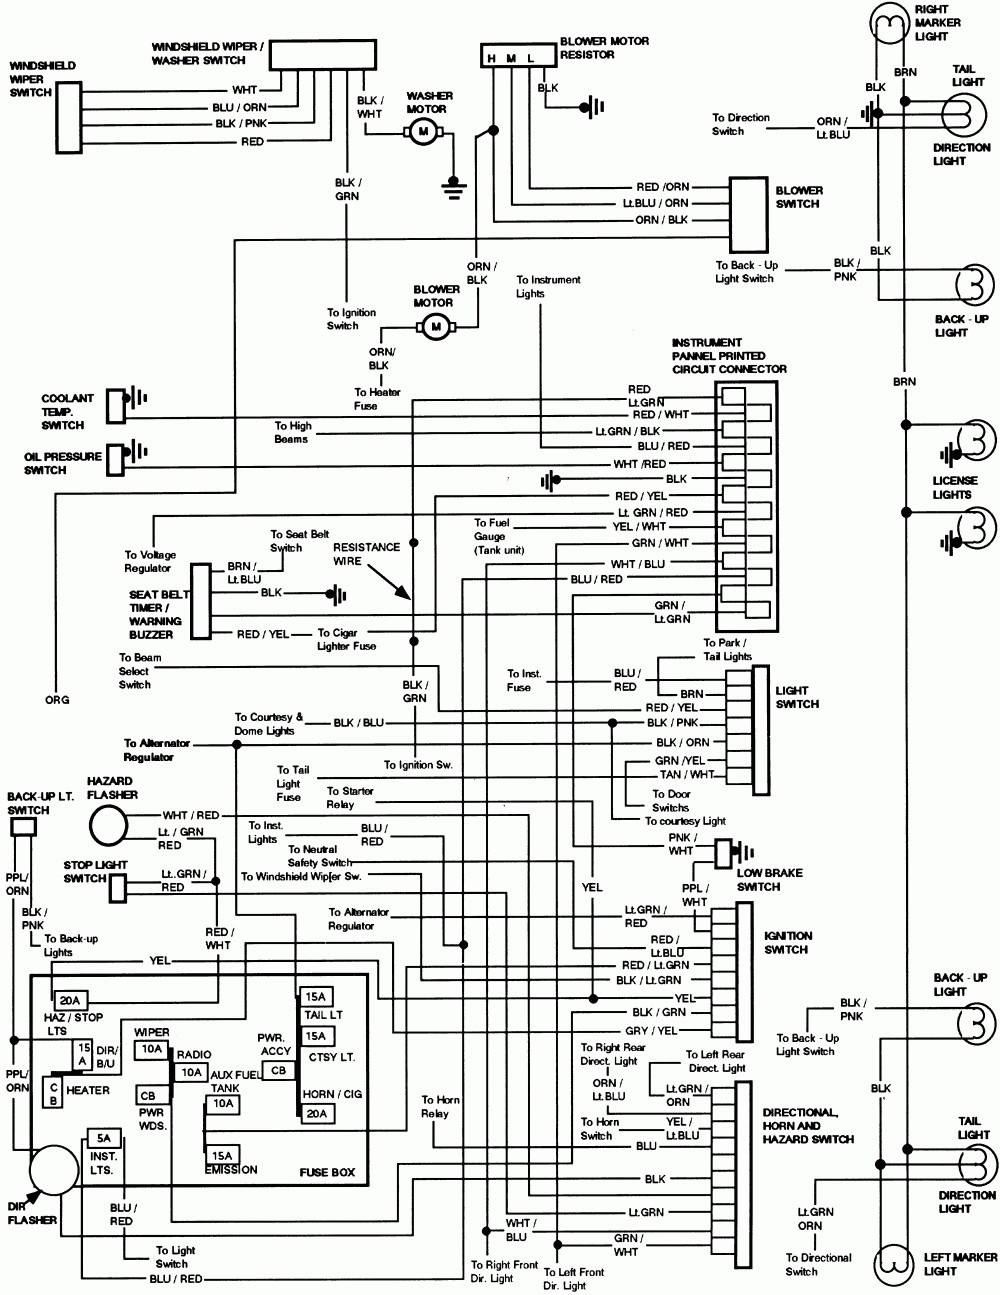 medium resolution of ford flex wiring diagram wiring diagram third level ford fairlane wiring diagram ford flex wiring diagram